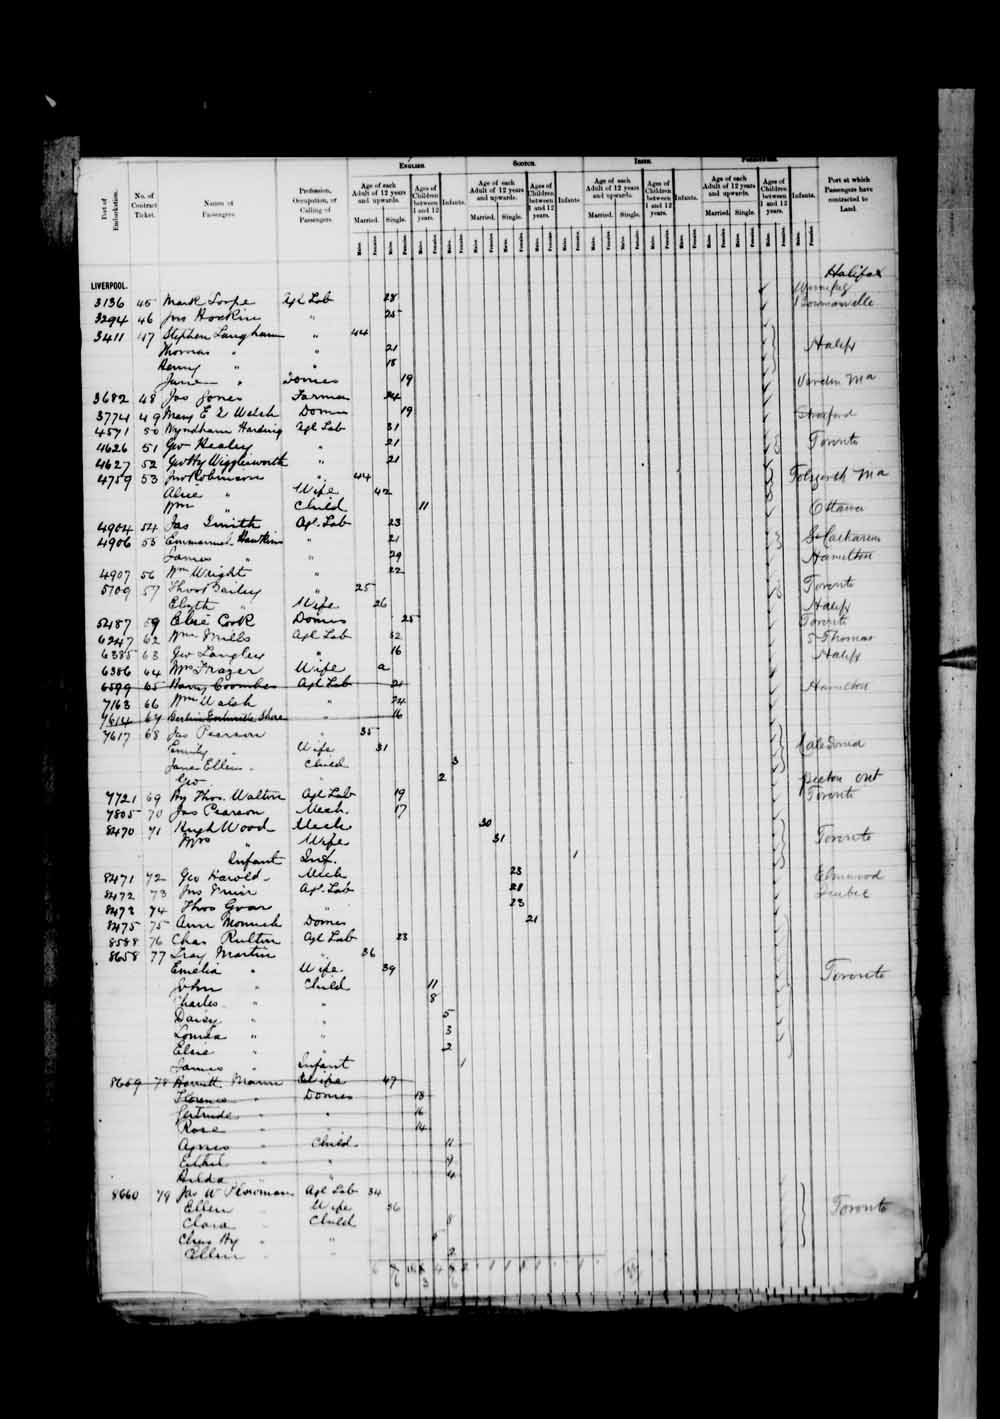 Digitized page of Passenger Lists for Image No.: e003674946